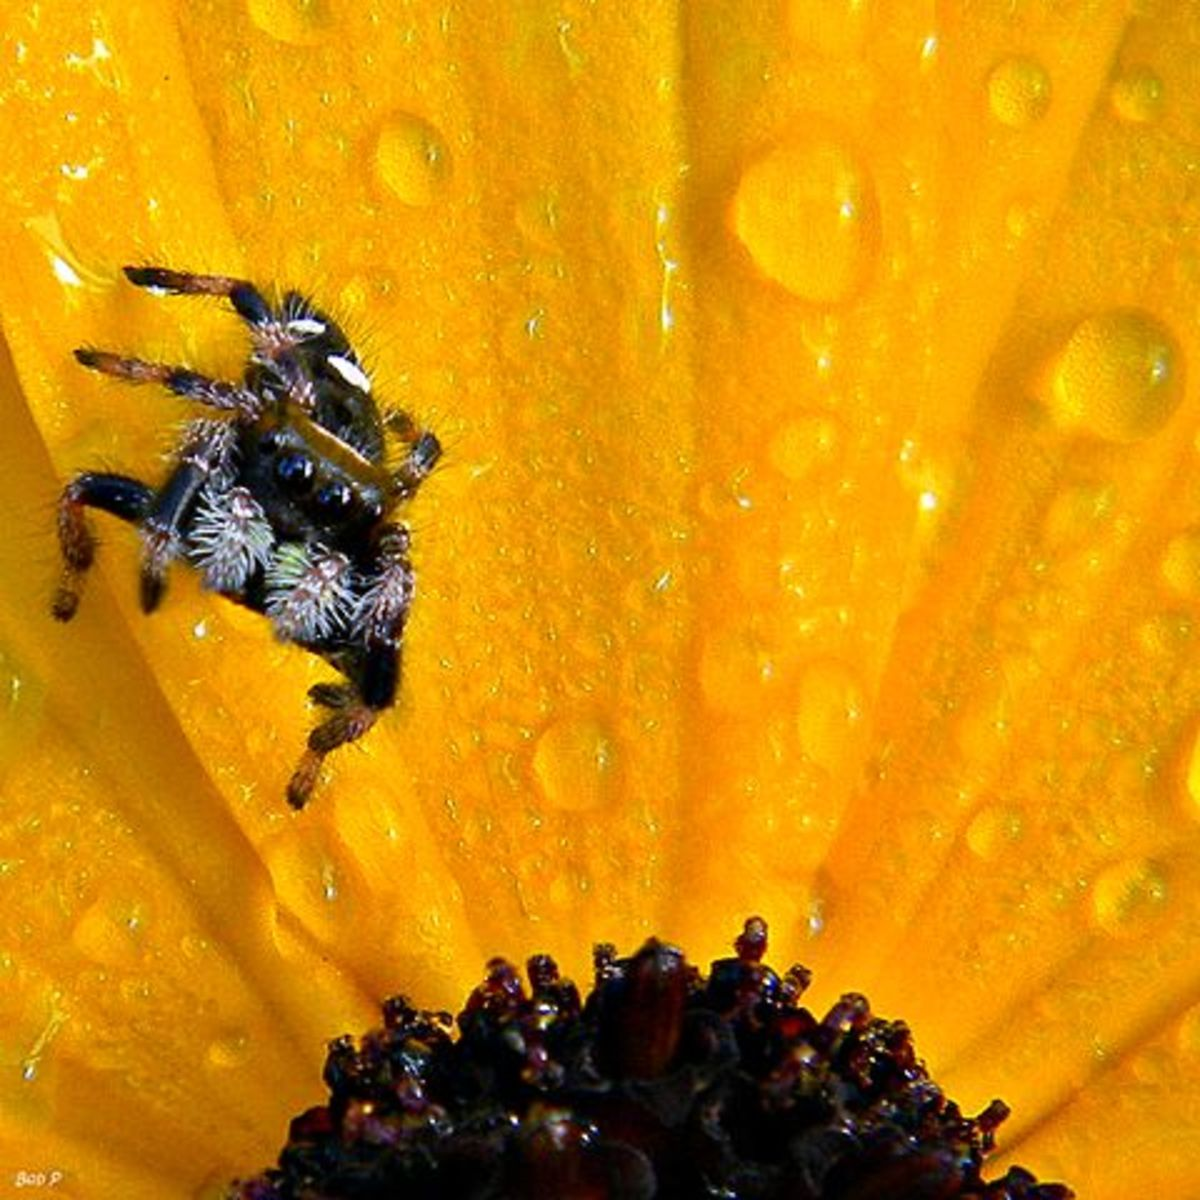 Oompa the dewdrop-sized jumping spider patiently waits for something tasty to land on her flower.